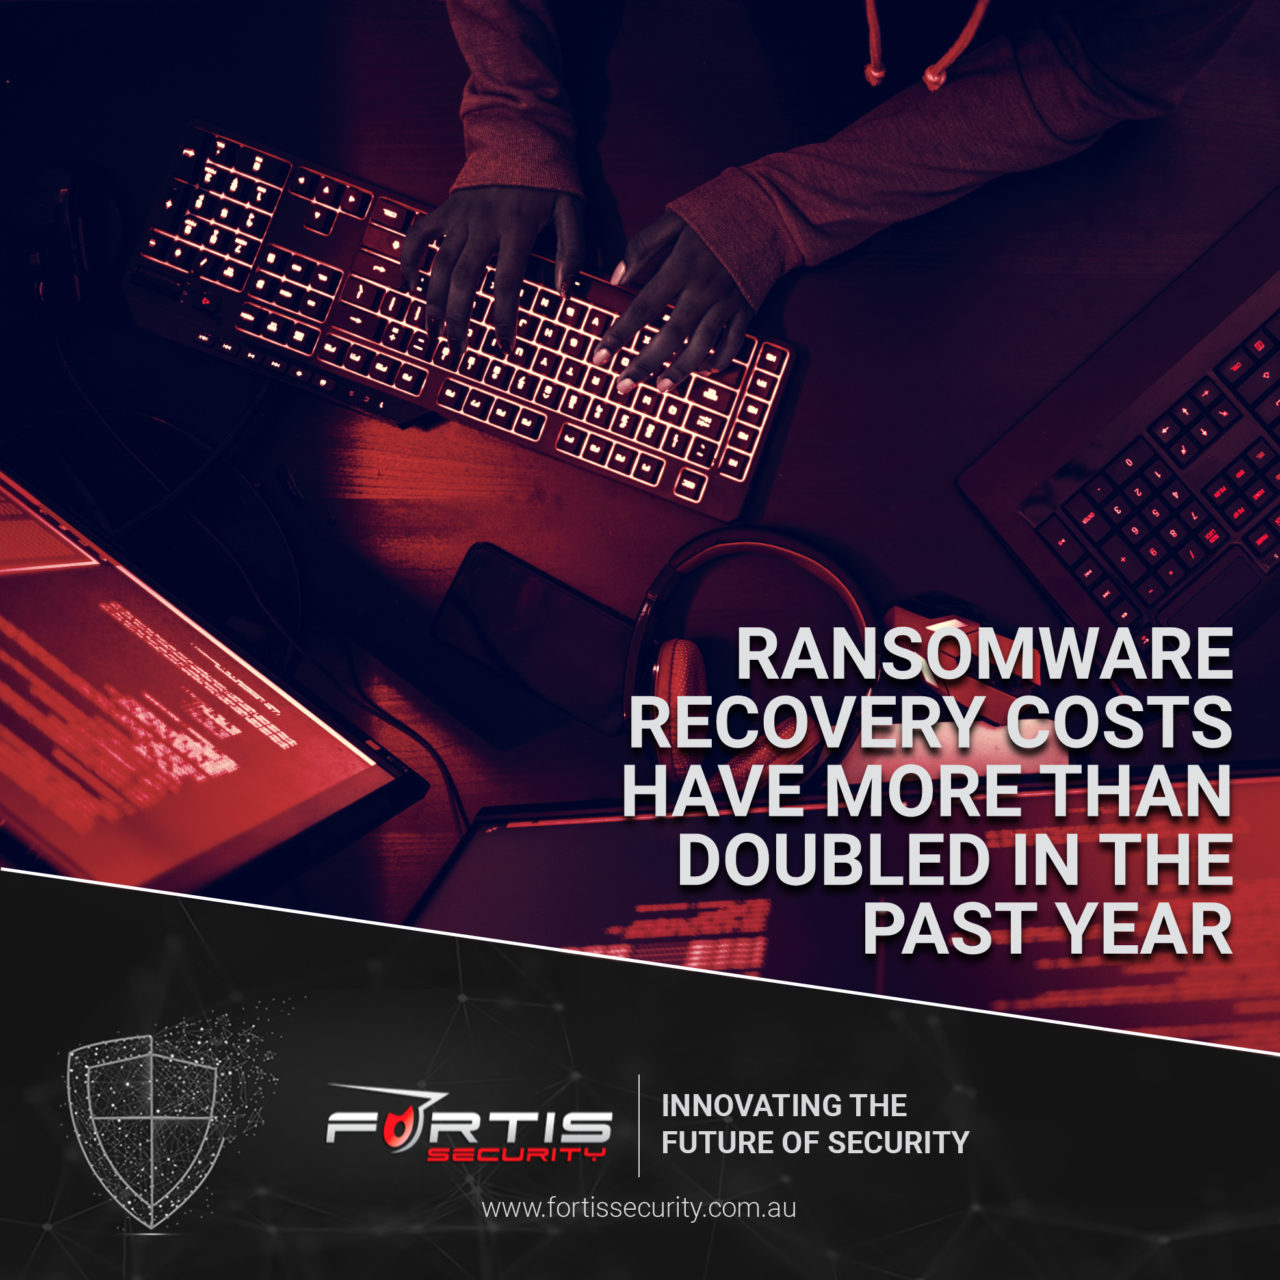 https://www.fortissecurity.com.au/wp-content/uploads/2021/05/Article-6-1280x1280.jpg